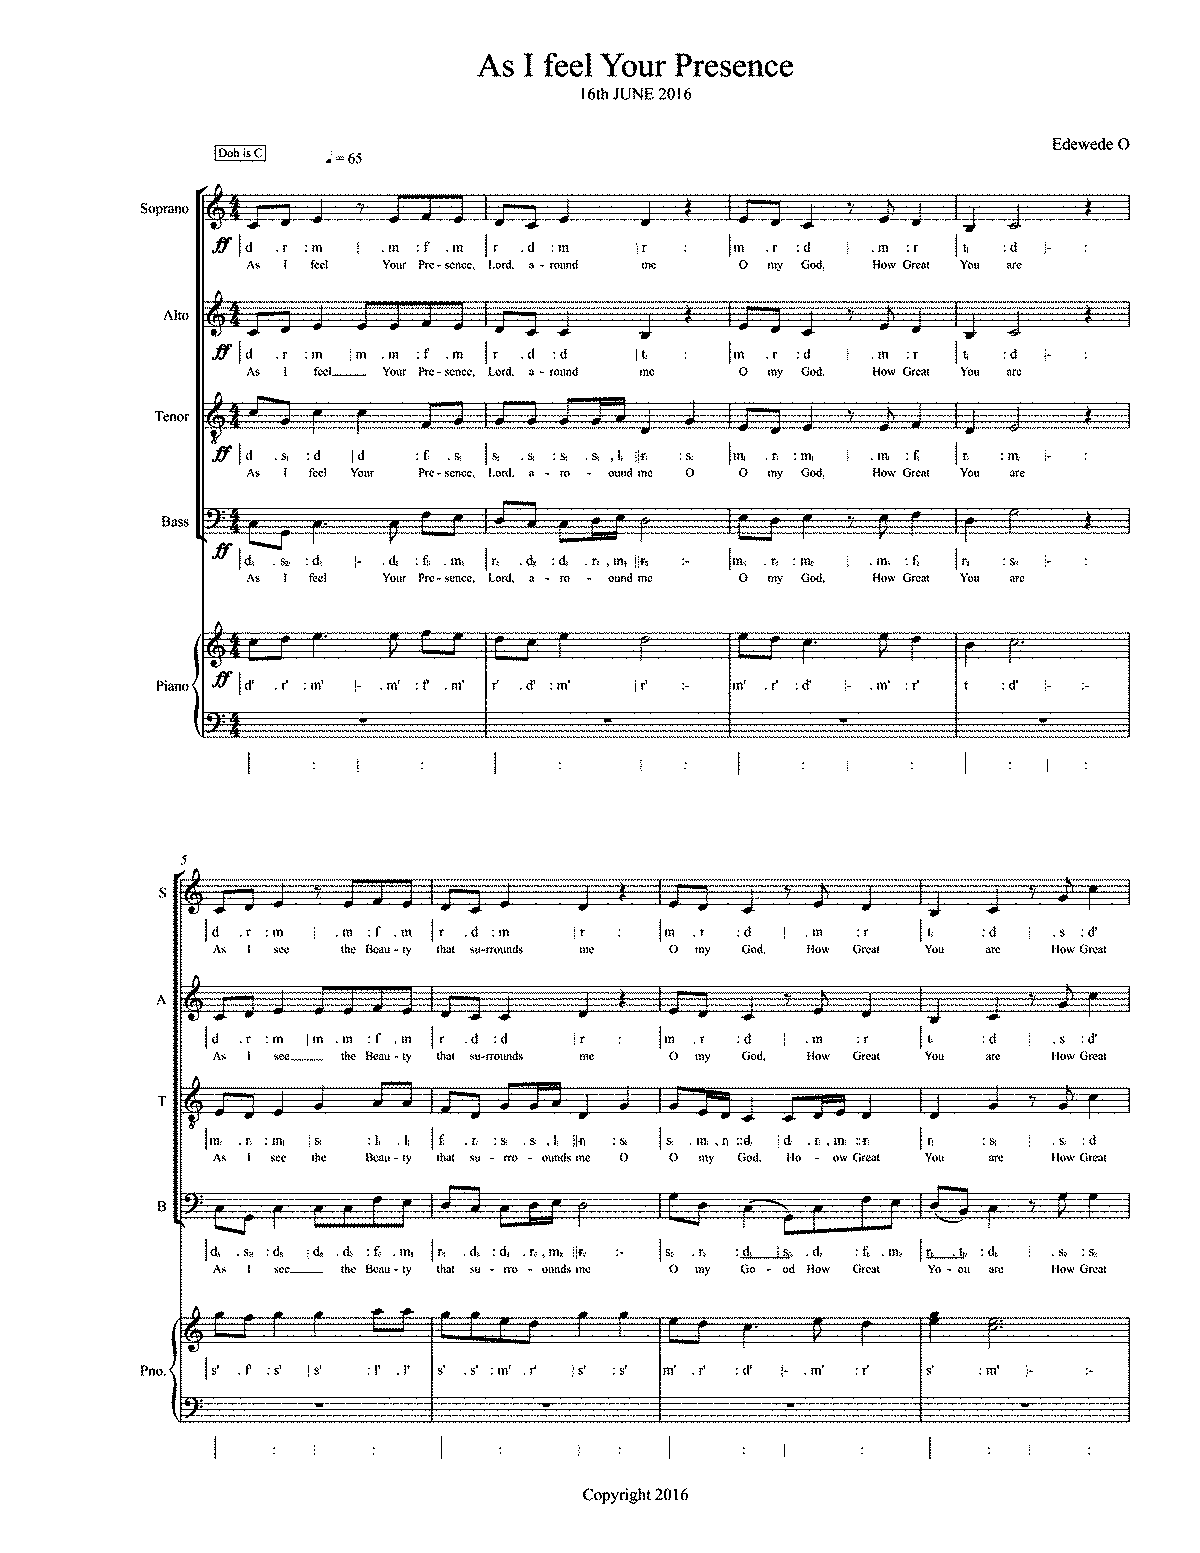 PMLP721072-As I feel Your Presence - A HYMN 16th JUNE 2016 - Staff and Sol-fa.pdf